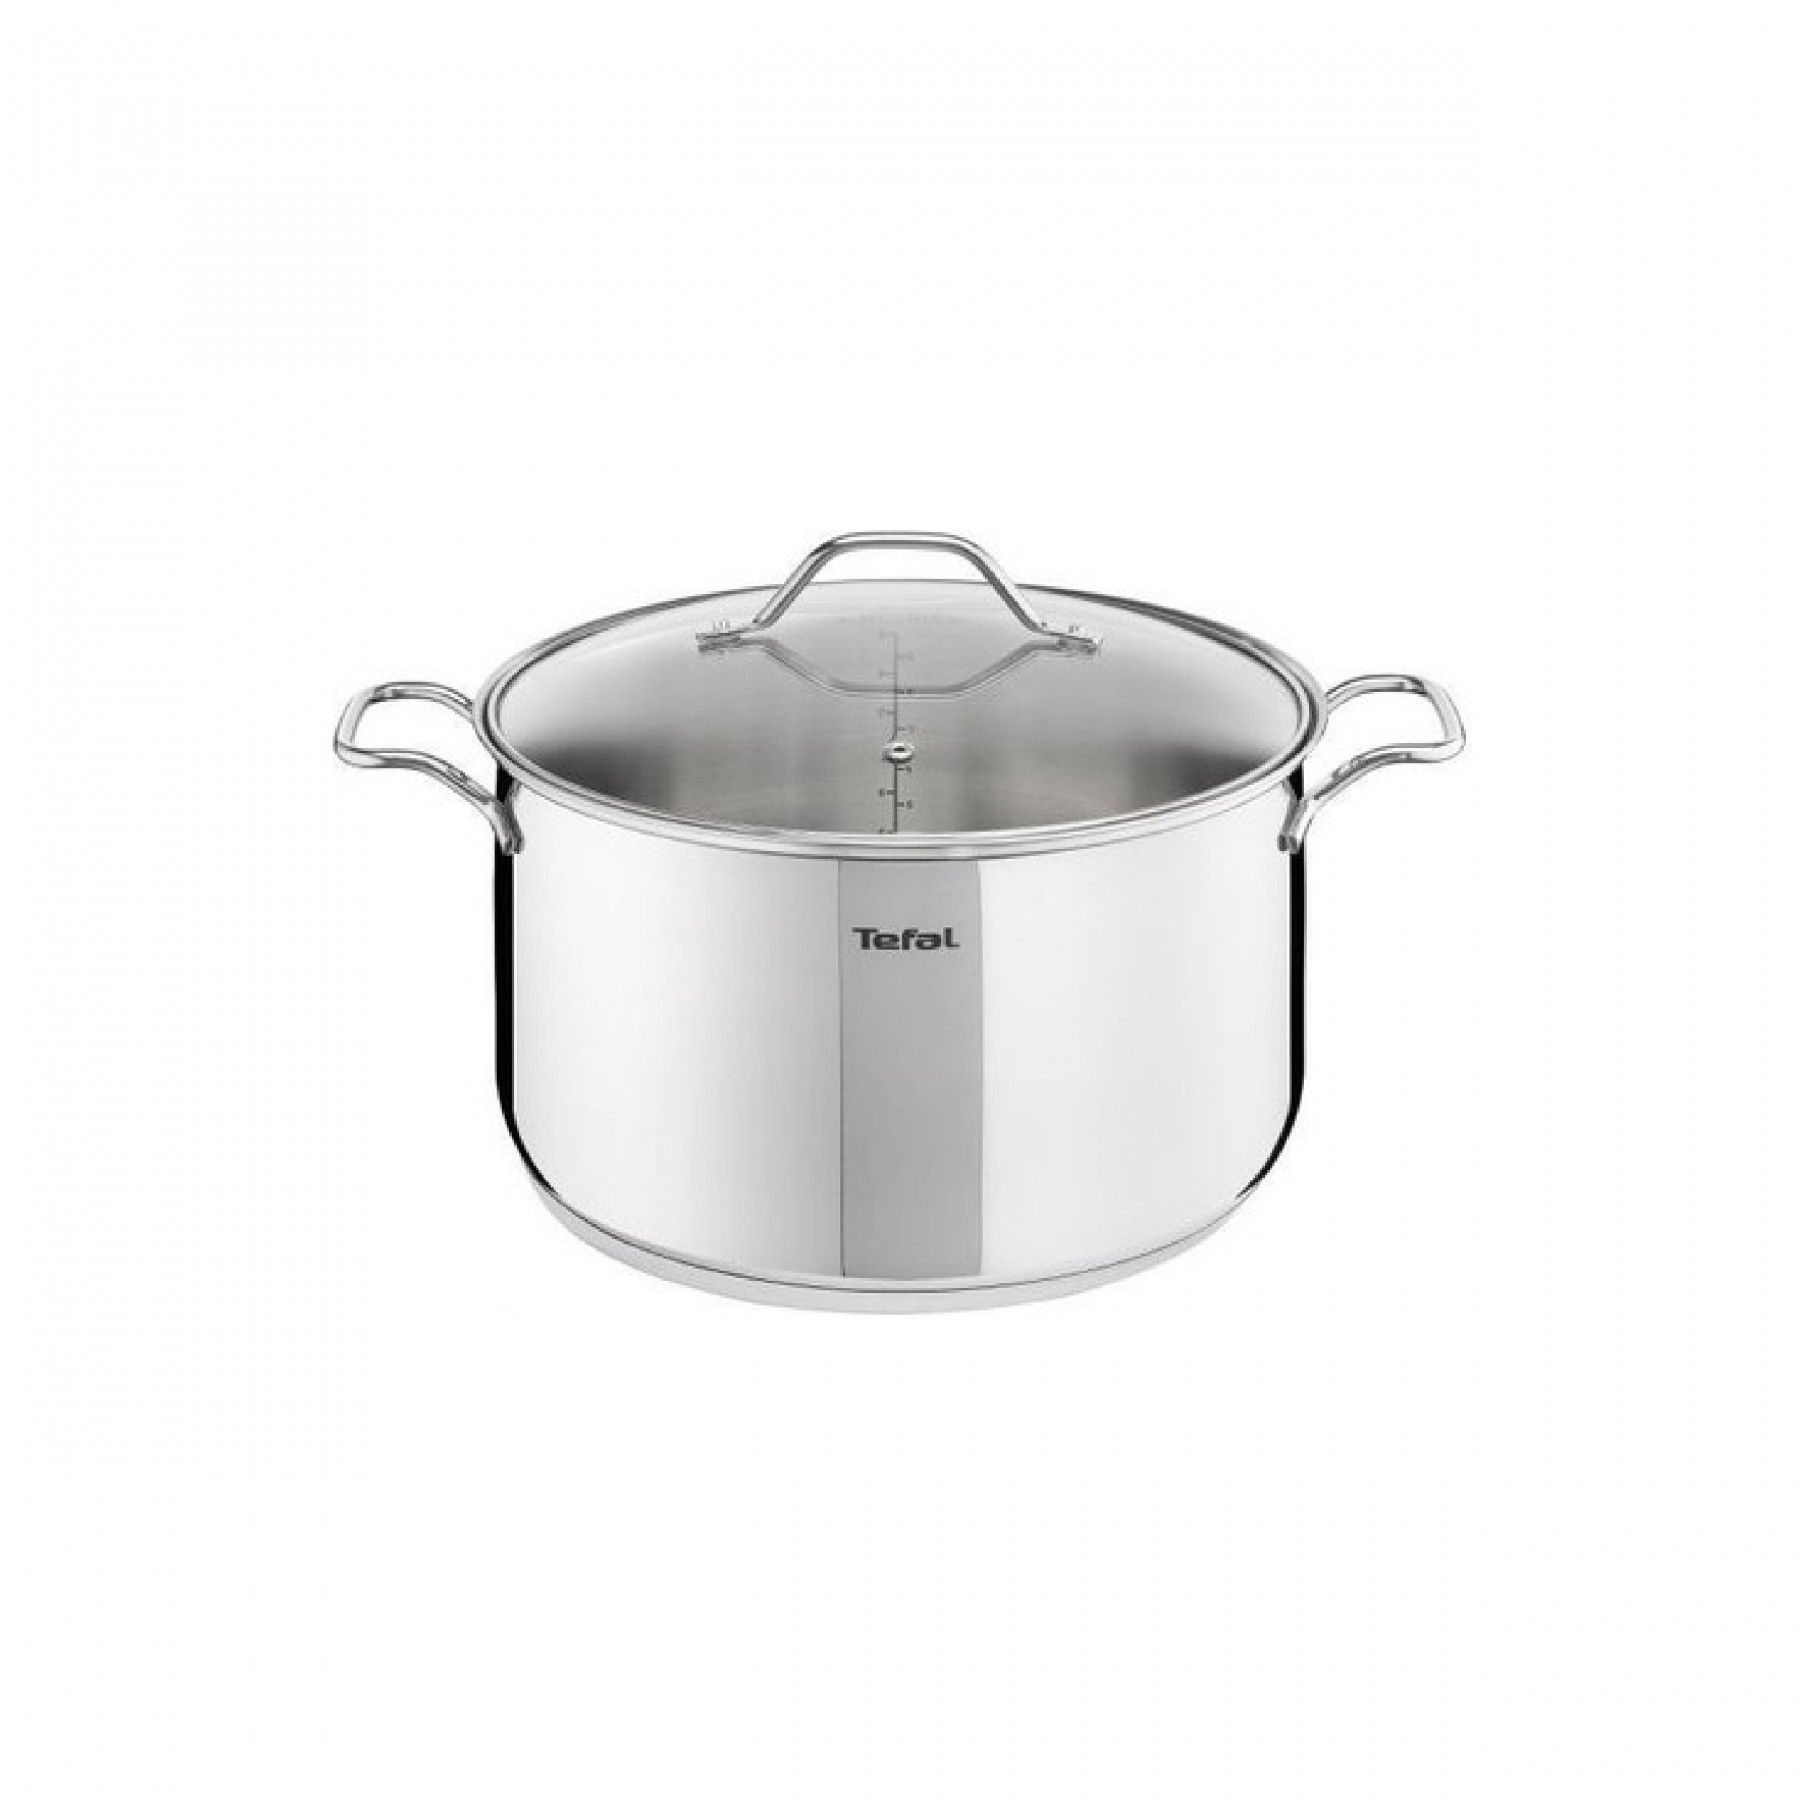 Tefal Intuition SS v2 Stewpot 24 with lid A7024685